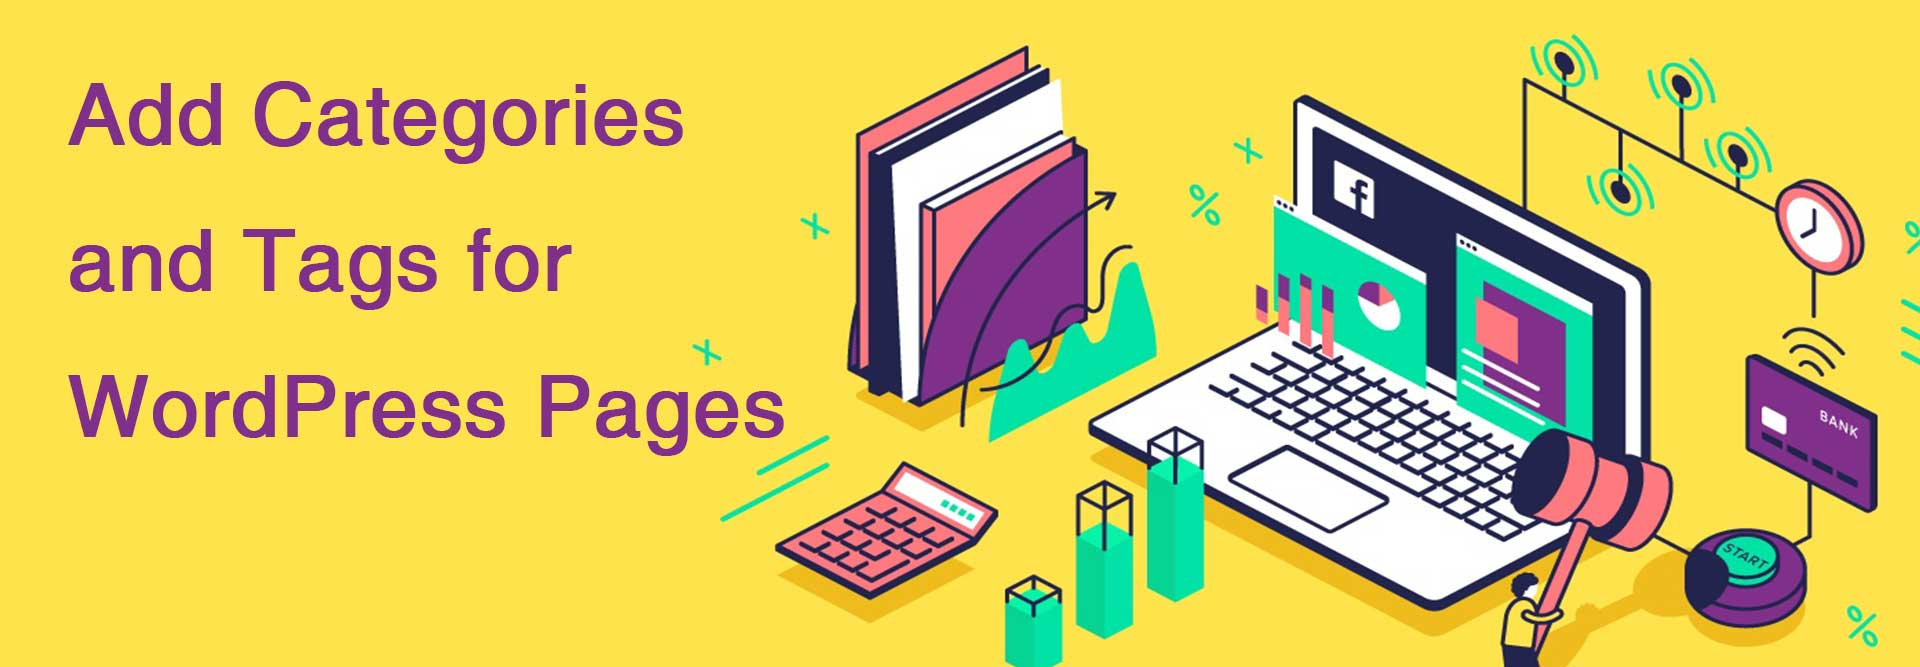 3 Ways to Add Categories and Tags for WordPress Pages - Hamza